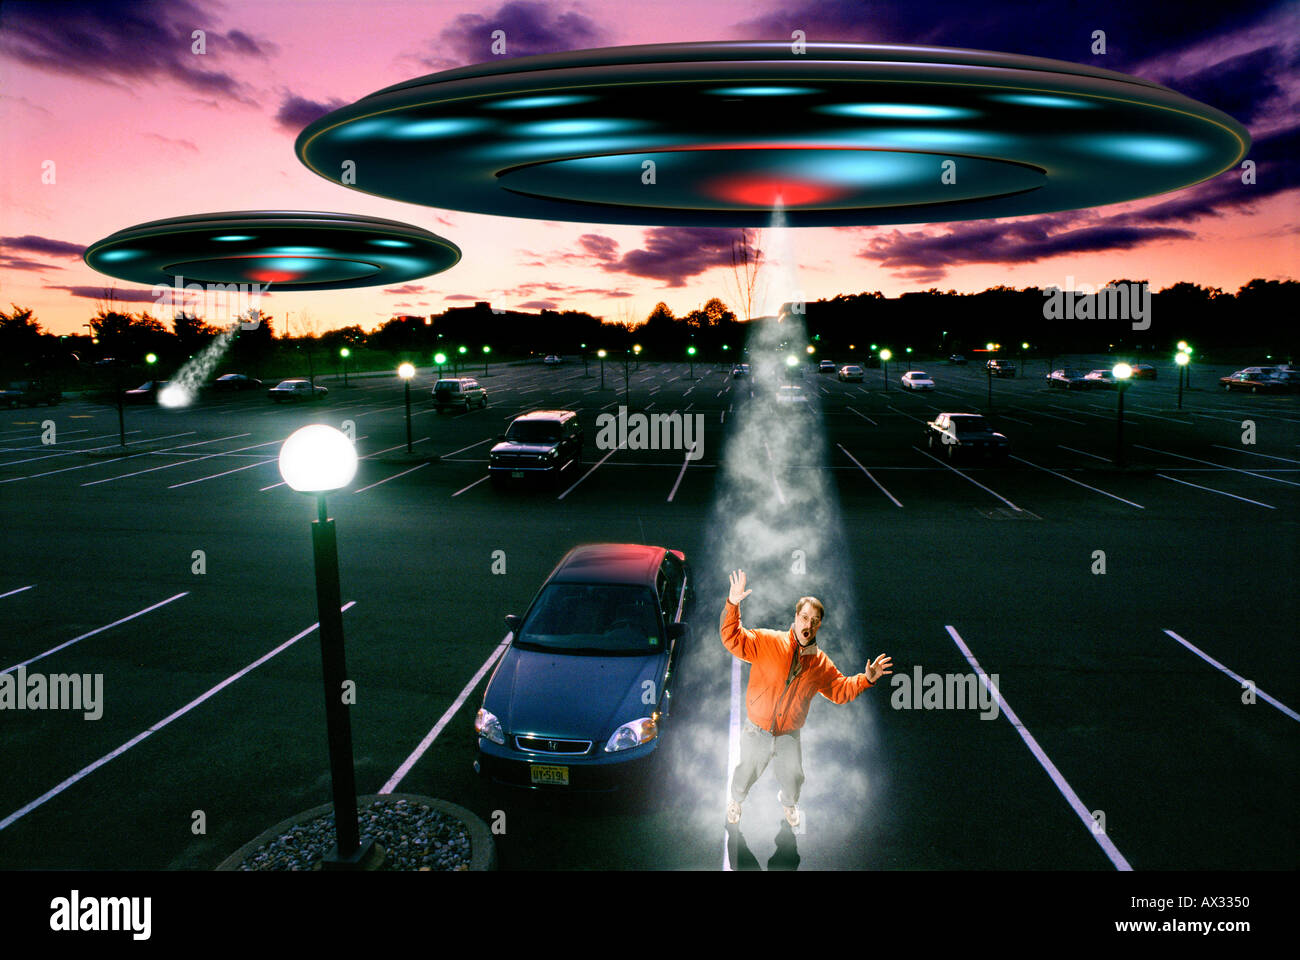 Alien Abduction - Stock Image